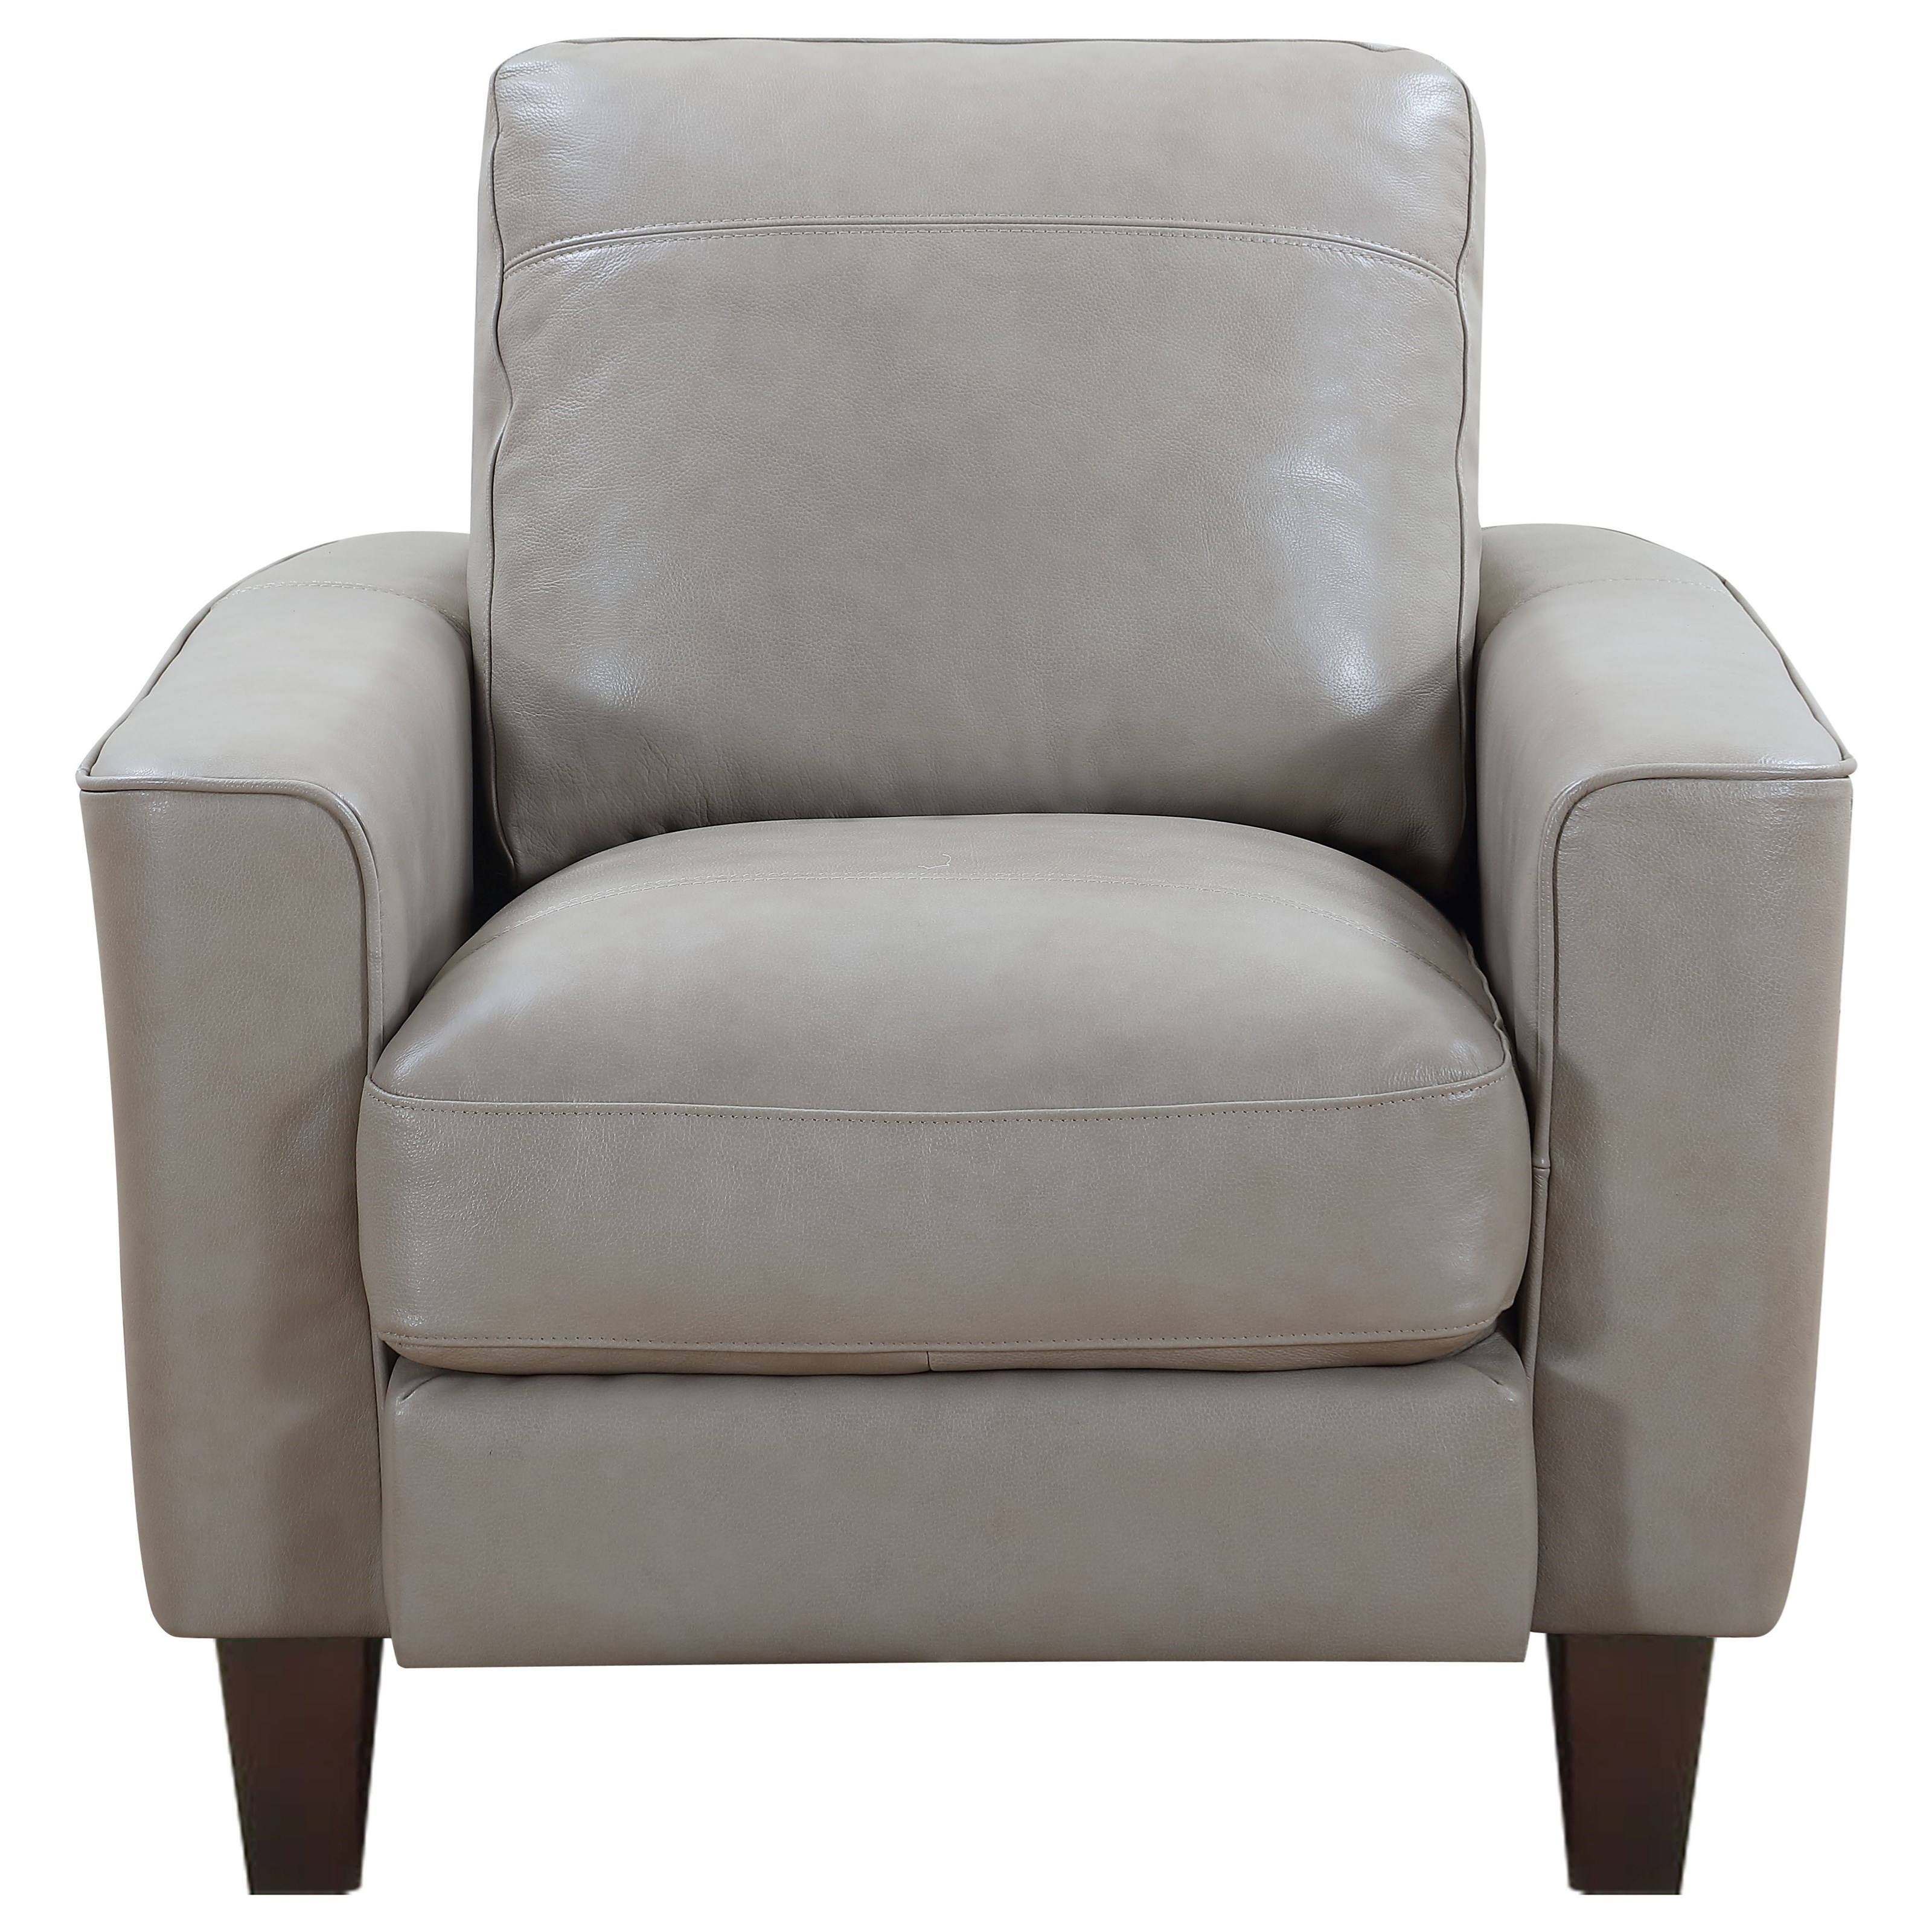 Georgetown - Chino Chair by Leather Italia USA at Johnny Janosik